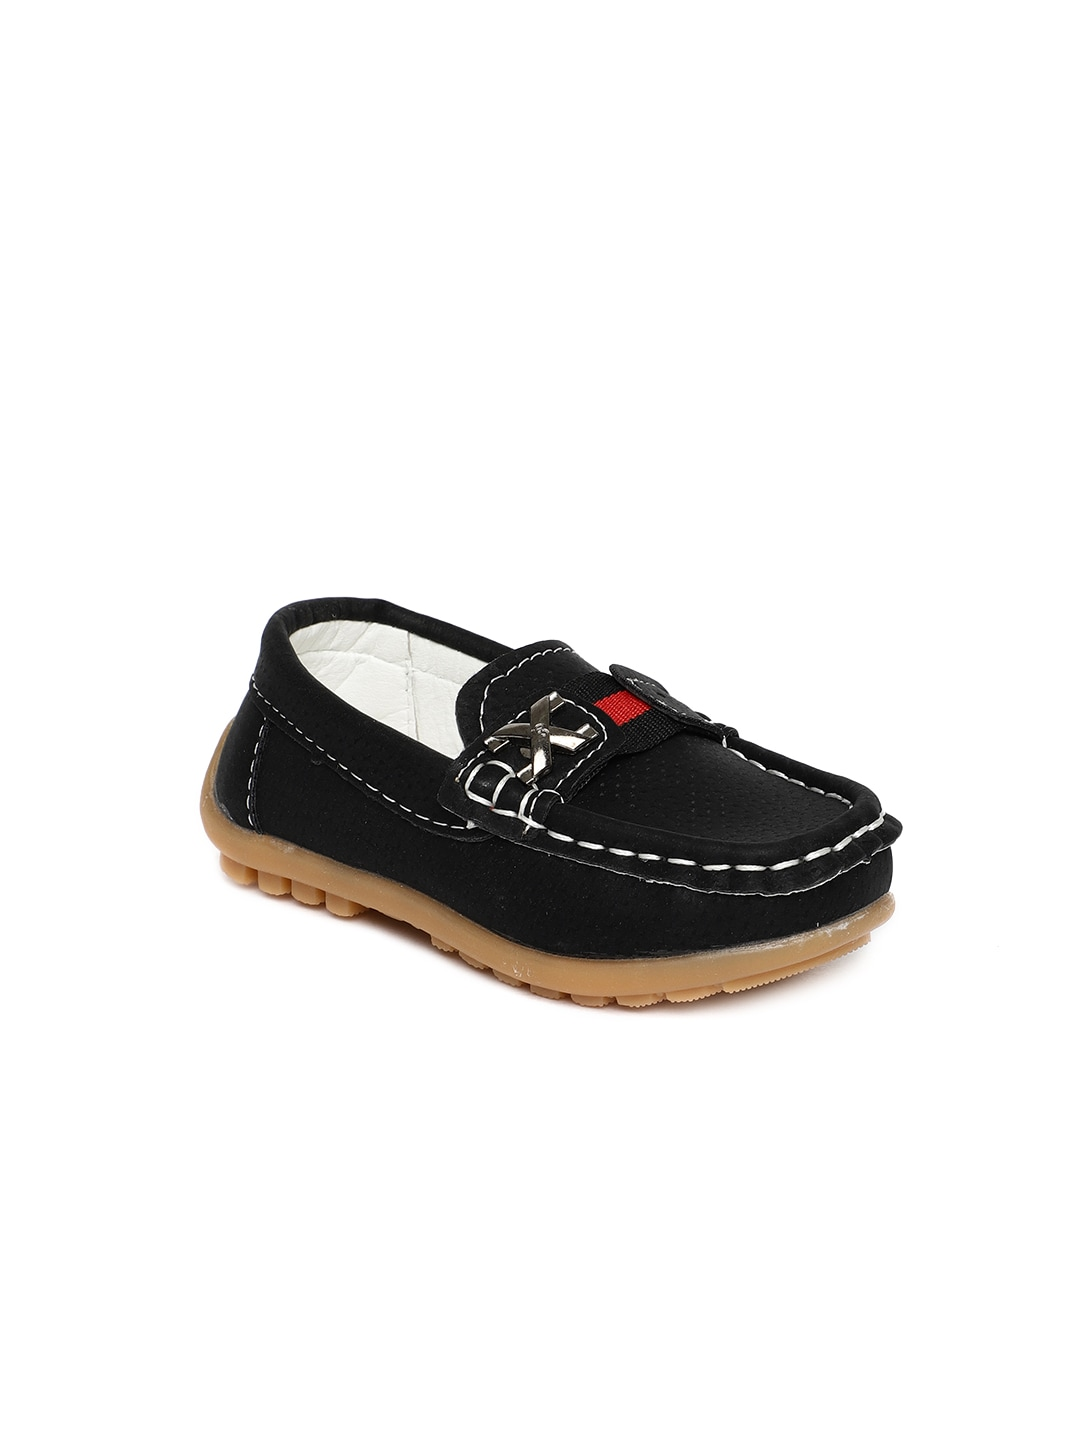 36d03ebe618 Buy Walktrendy Boys Red Loafers - Casual Shoes for Boys 7506909